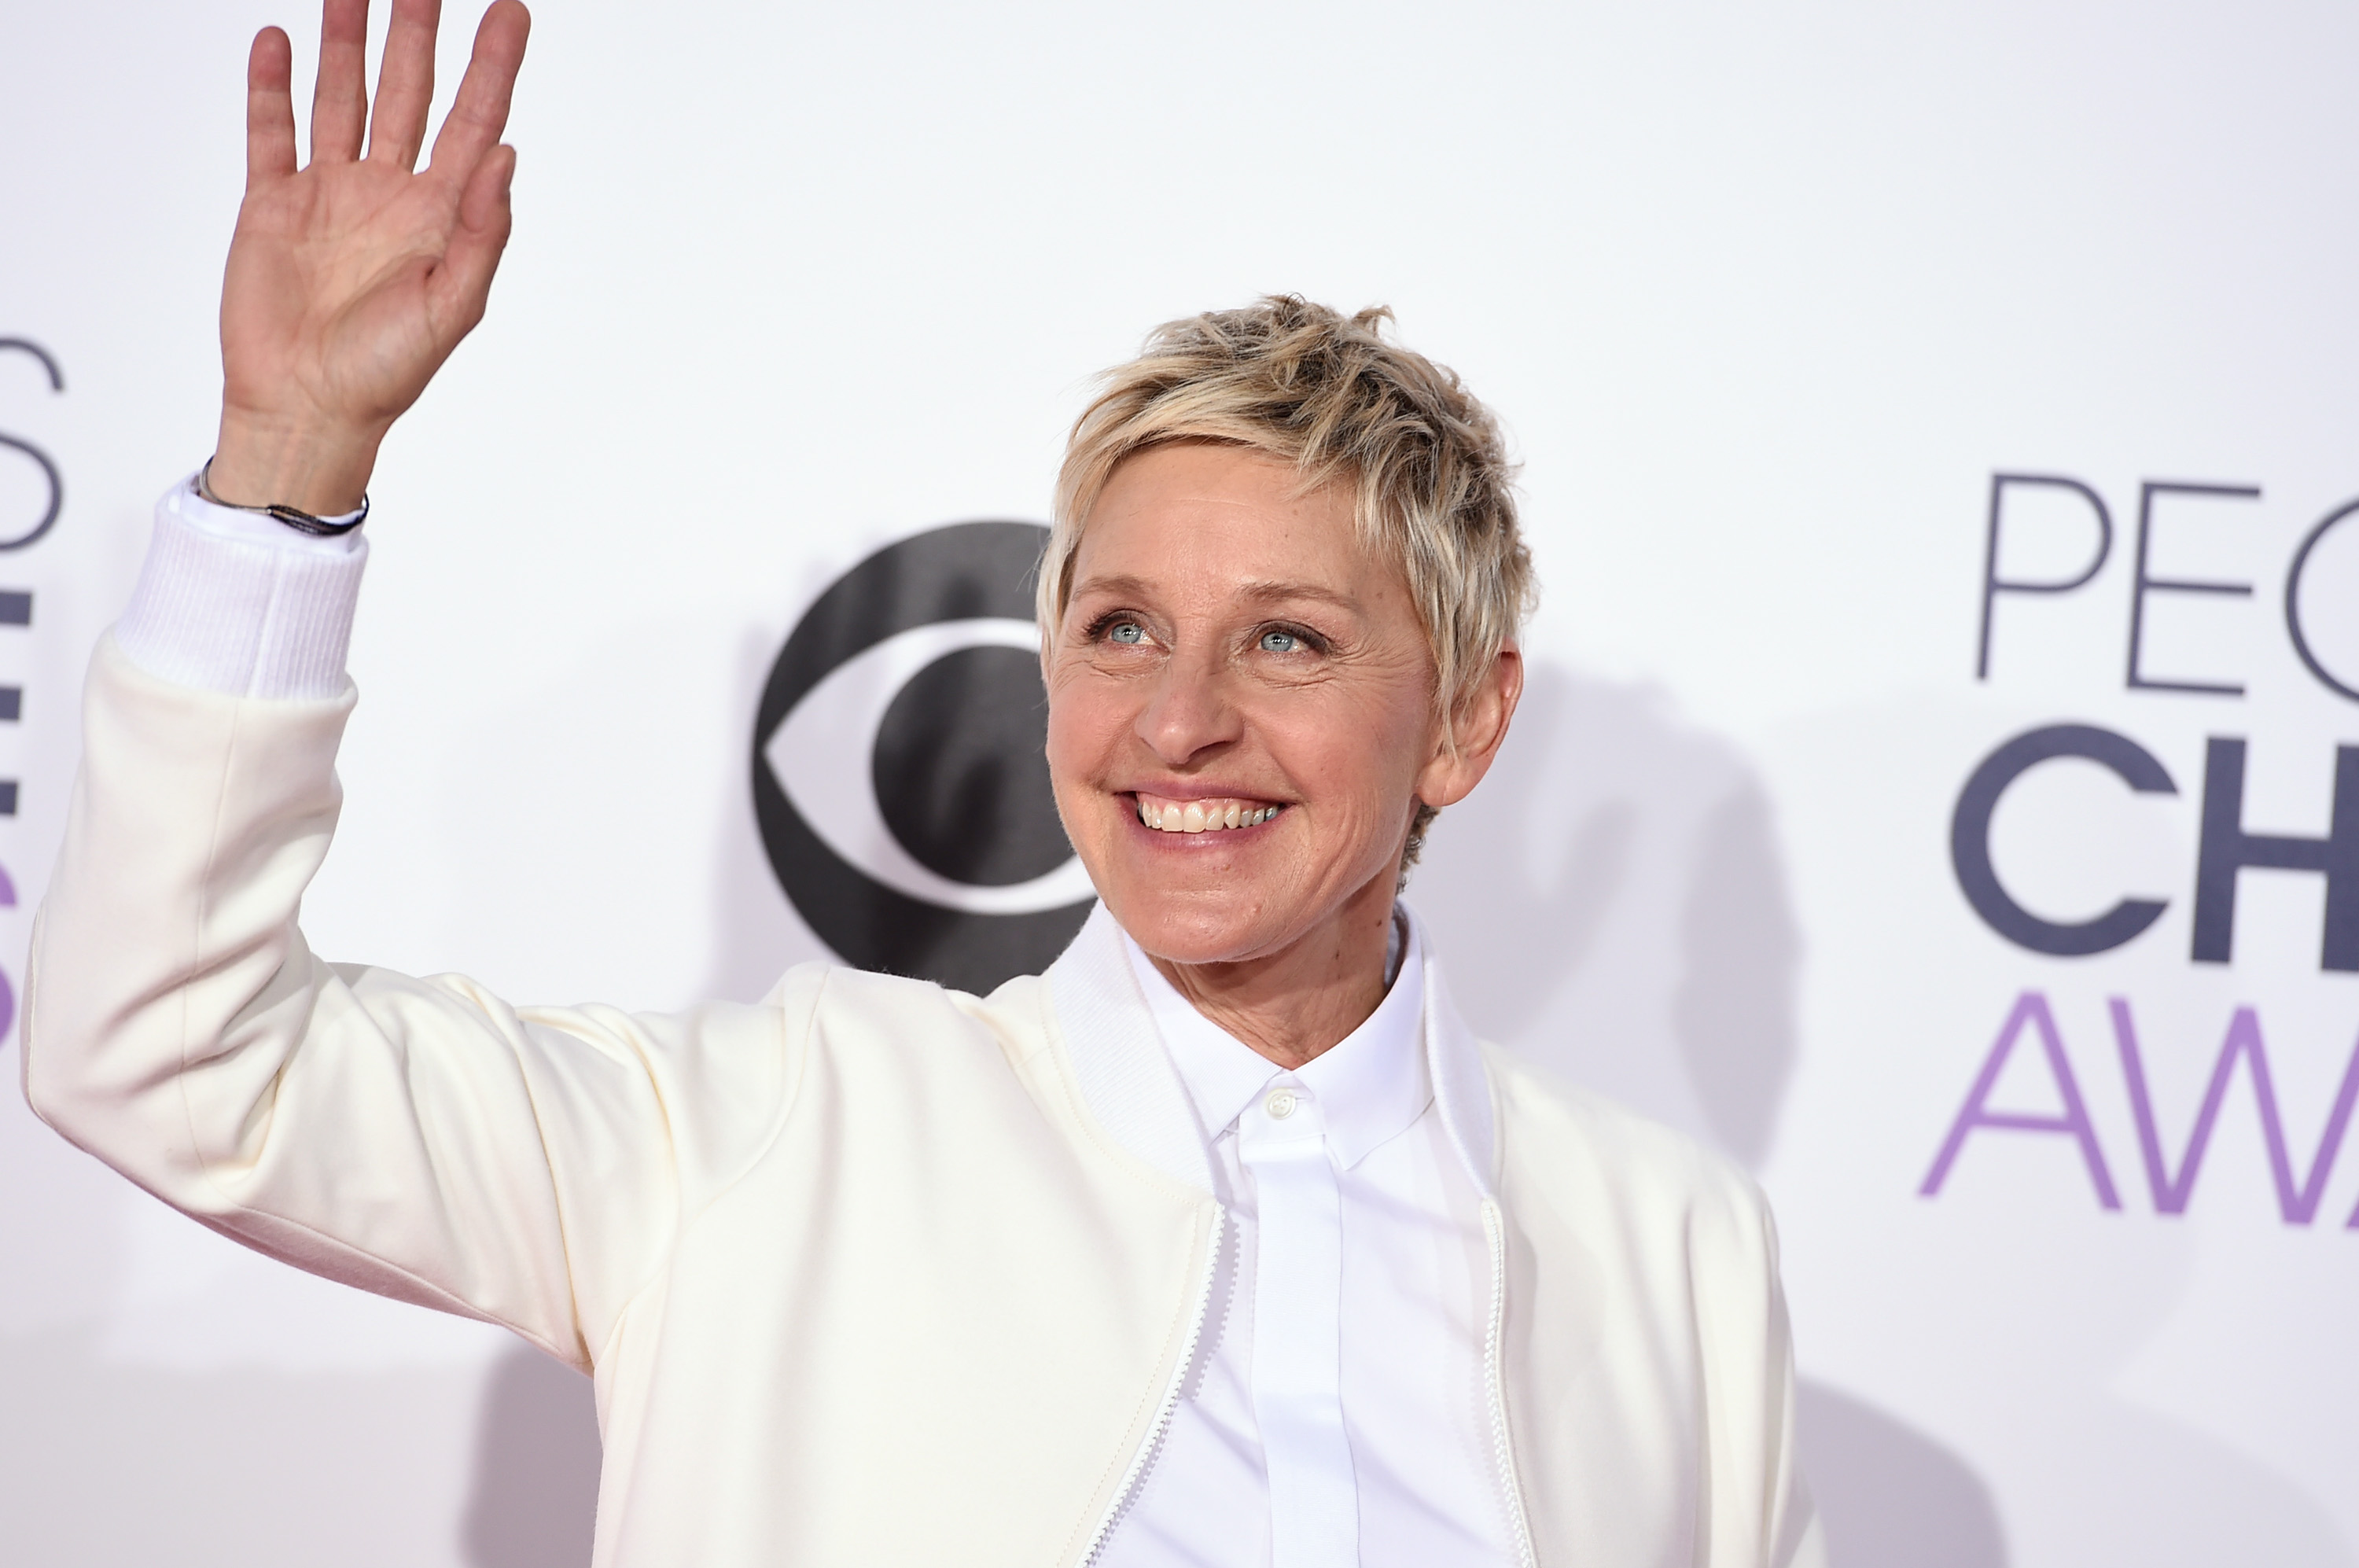 Photo: Ellen DeGeneres (AP Photo)